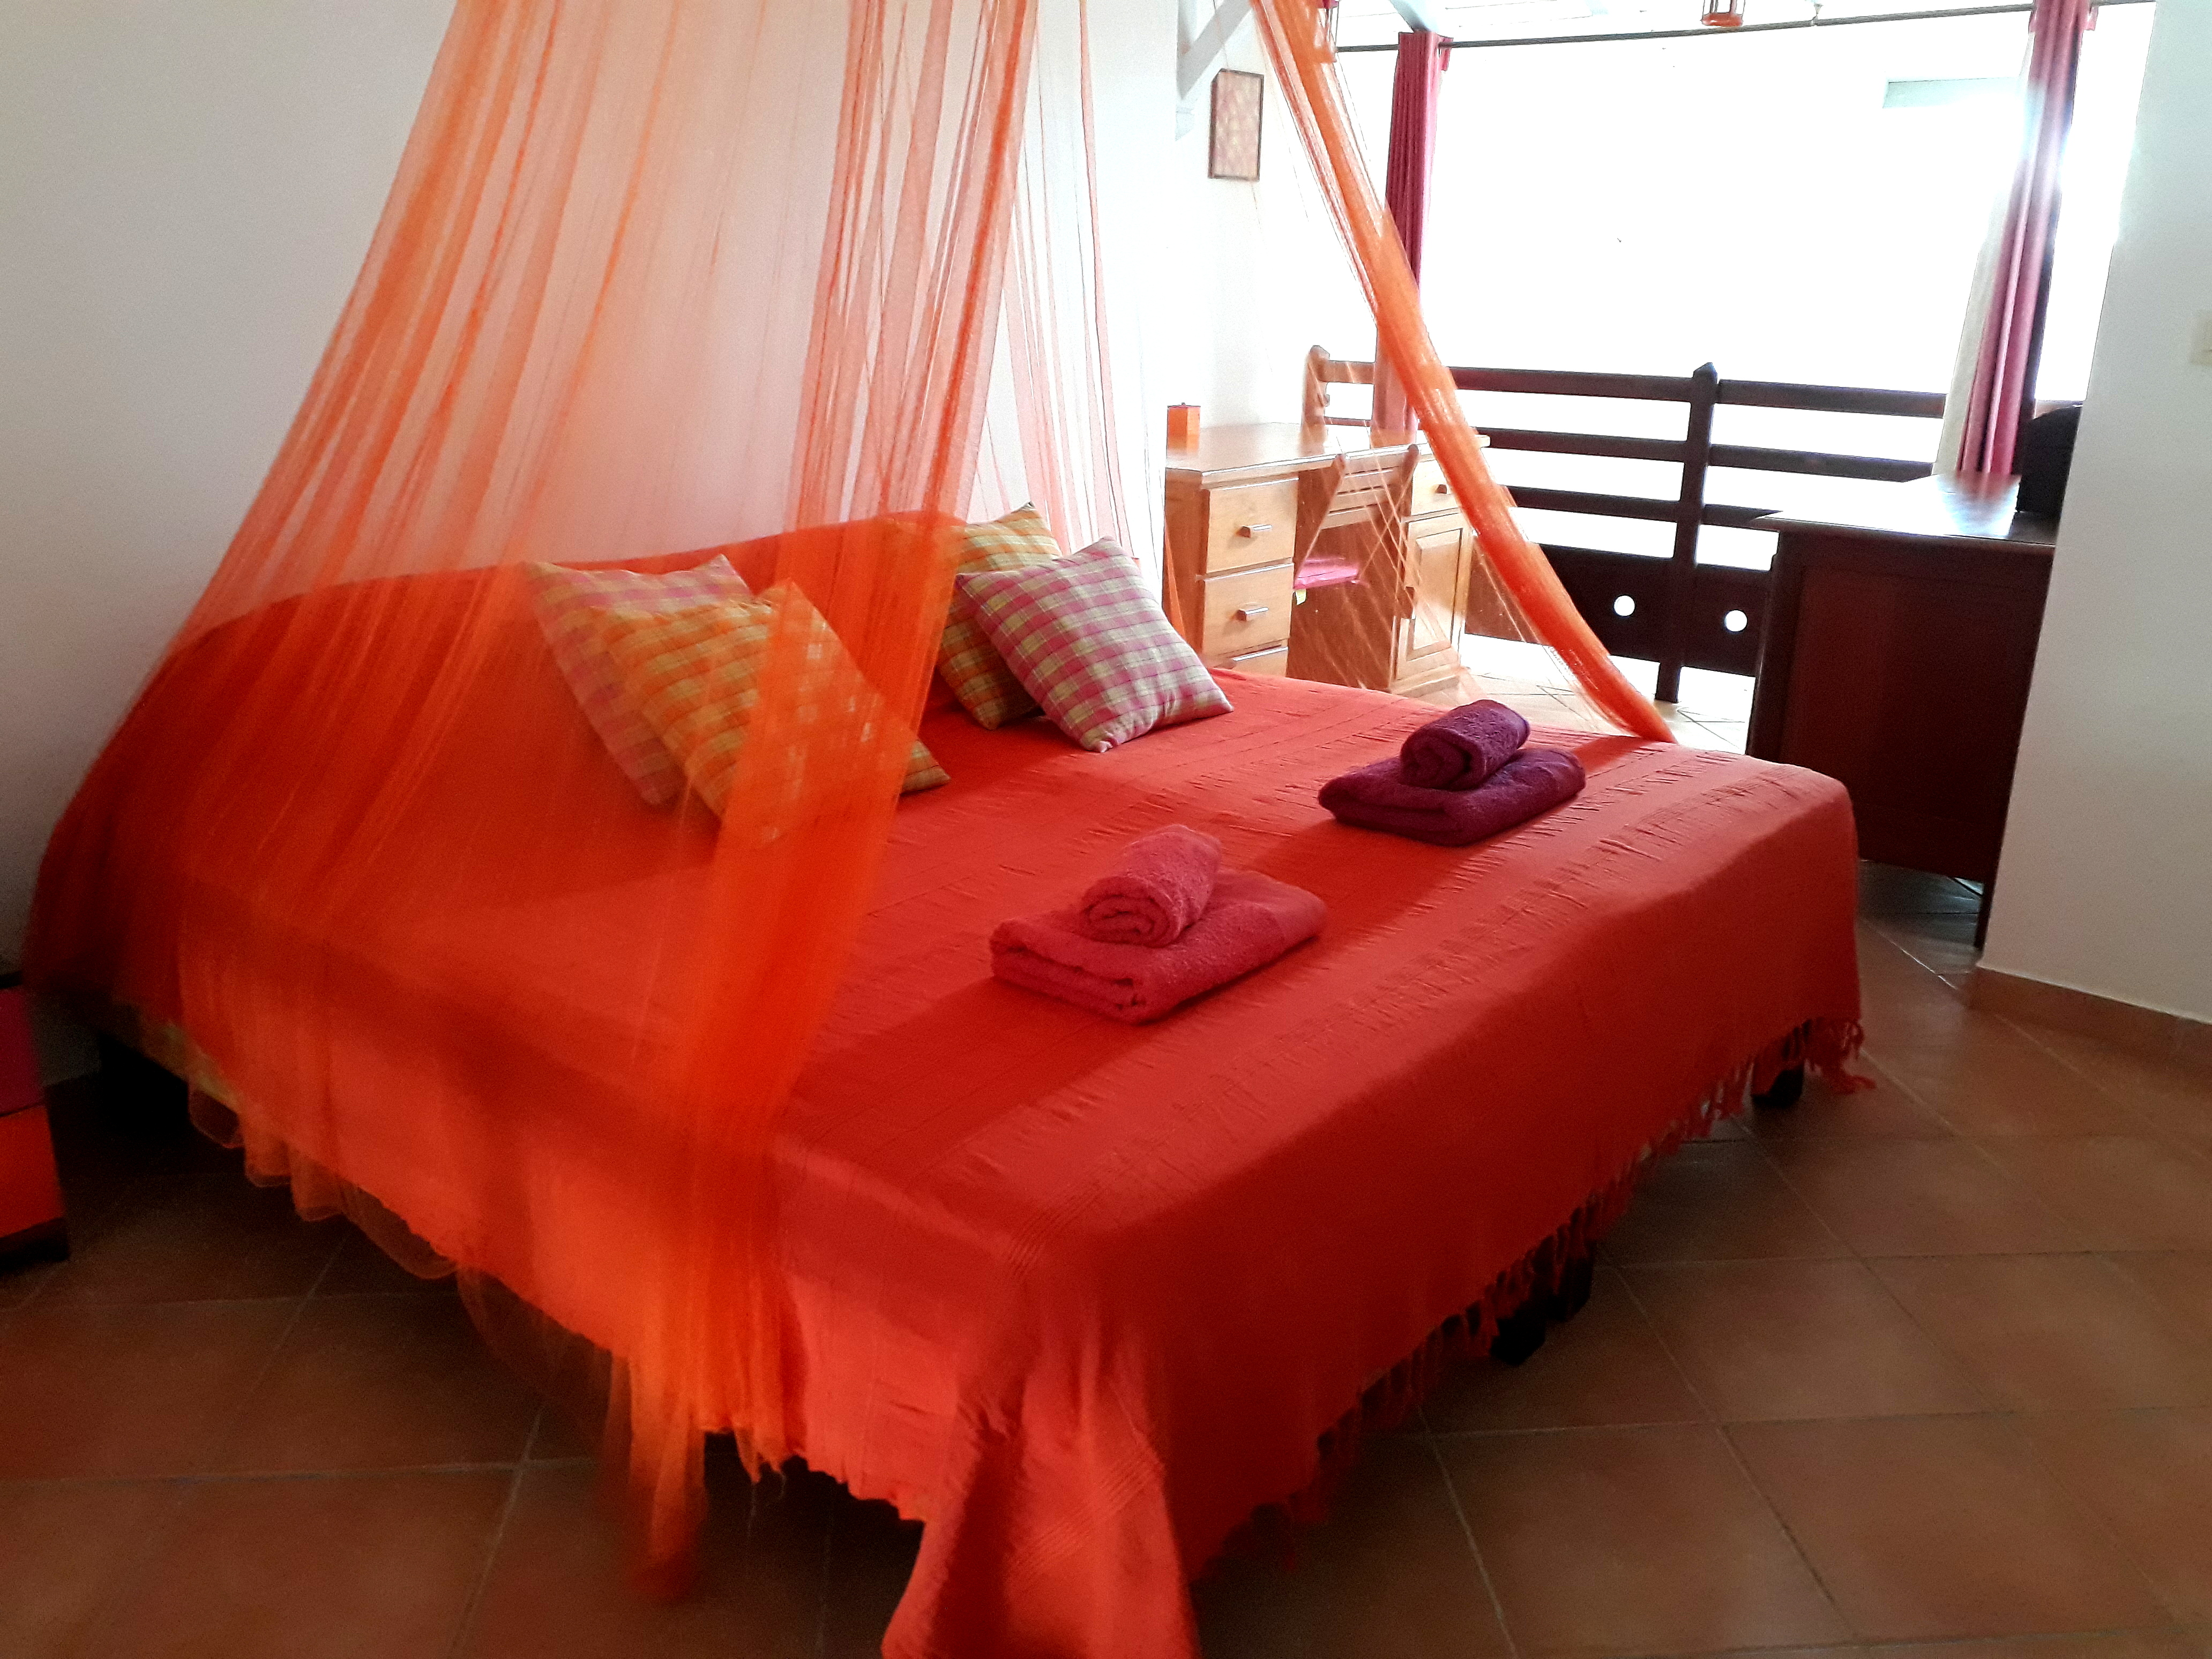 Anoli_Location_Chambre_Rose_&_Orange_Lit